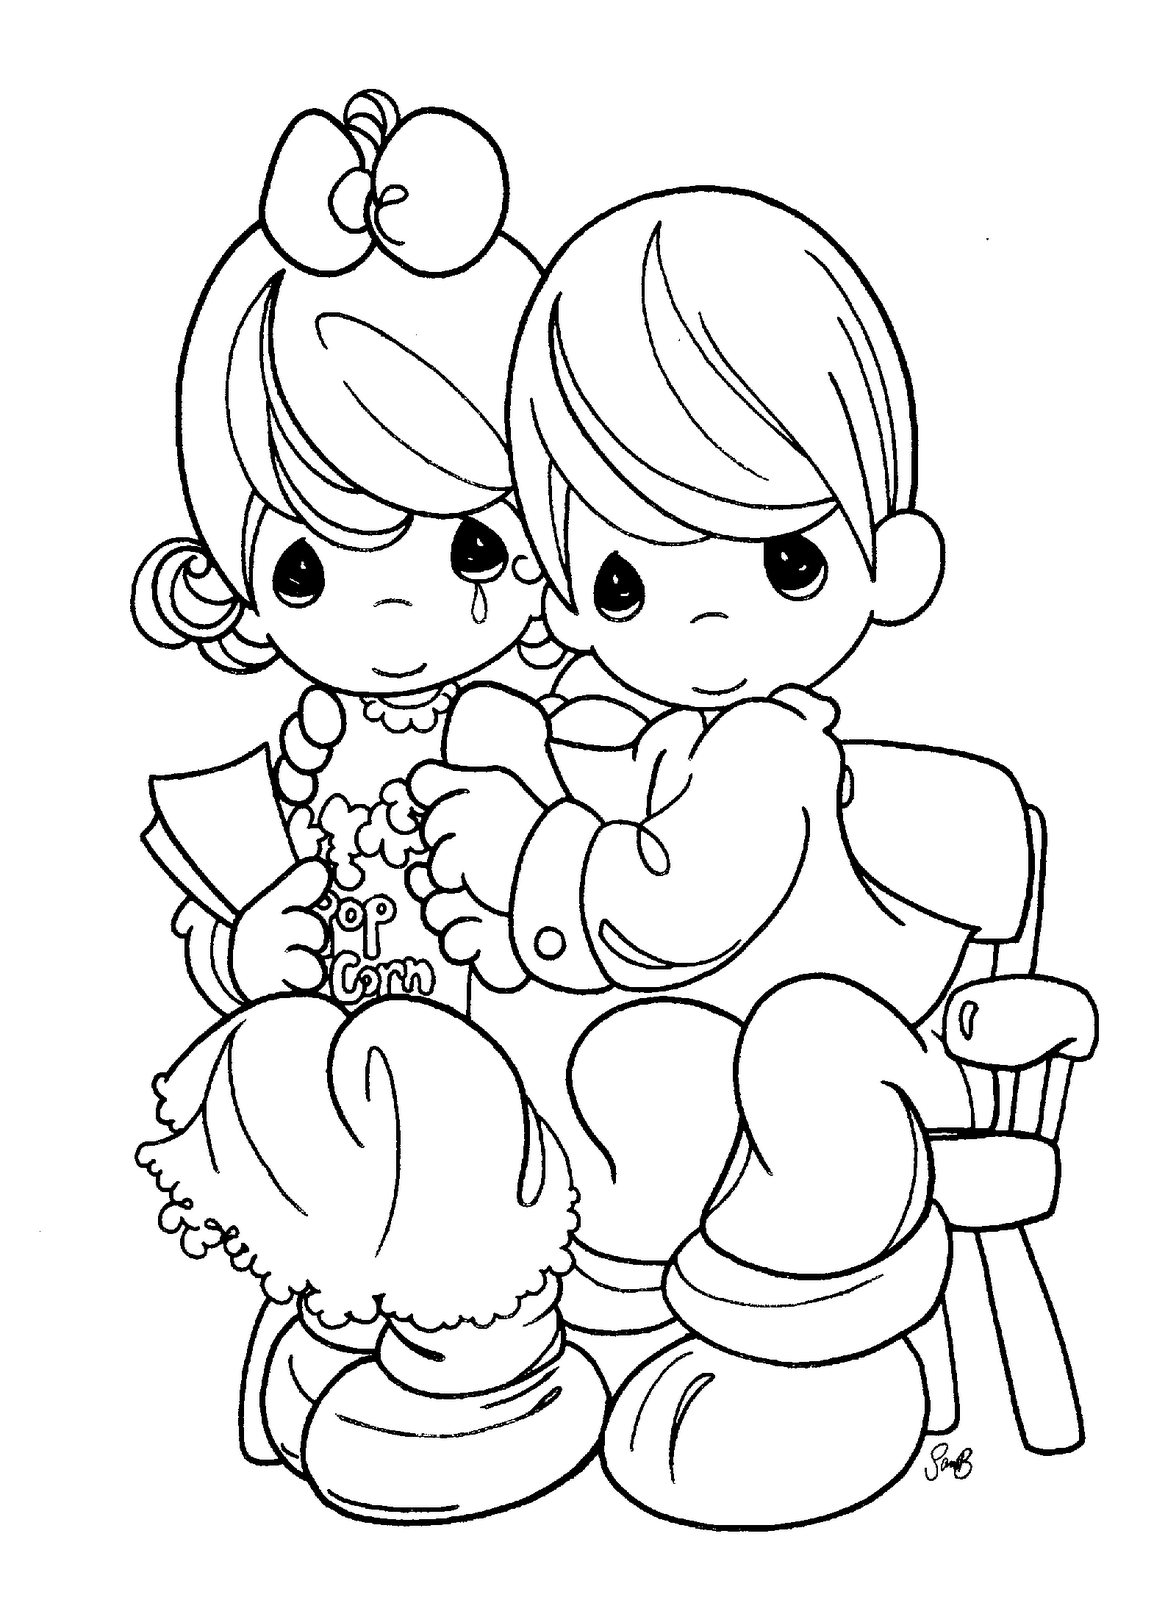 precious moments coloring books precious moments for love coloring pages gtgt disney books coloring precious moments 1 1